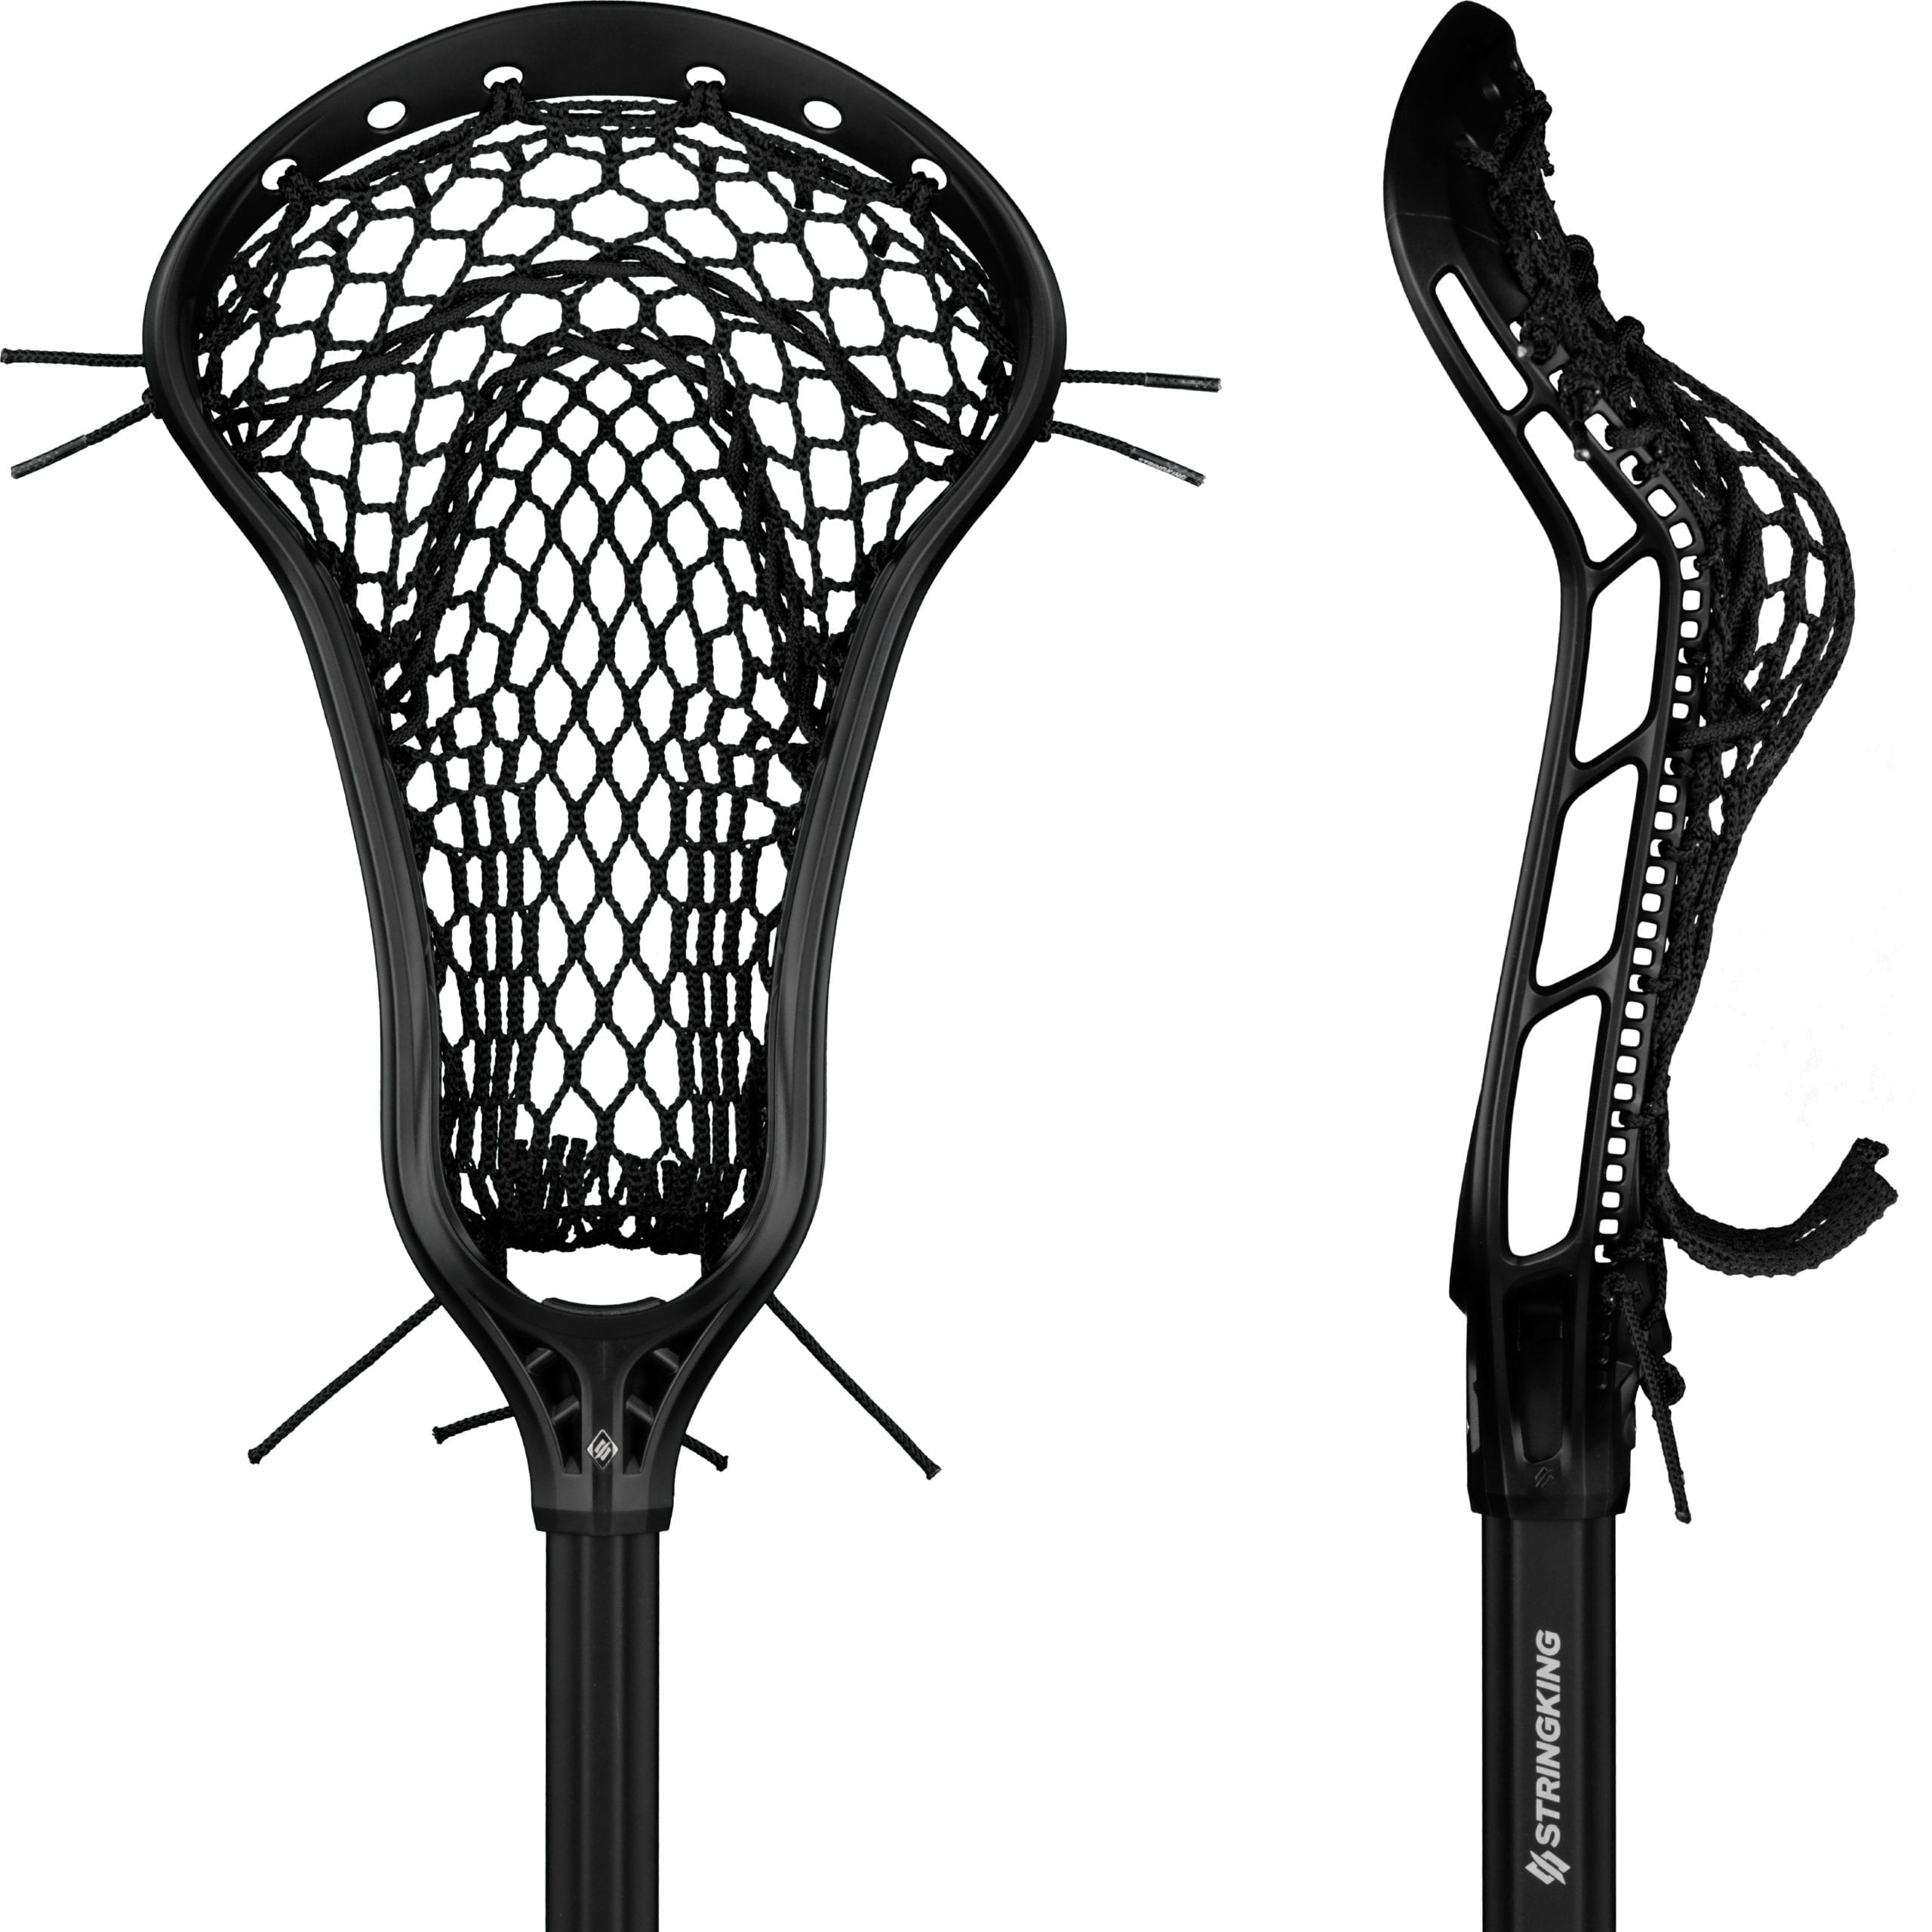 StringKing-Womens-Complete-2-Offense-Front-Side-Strung-Black-scaled-1.jpg